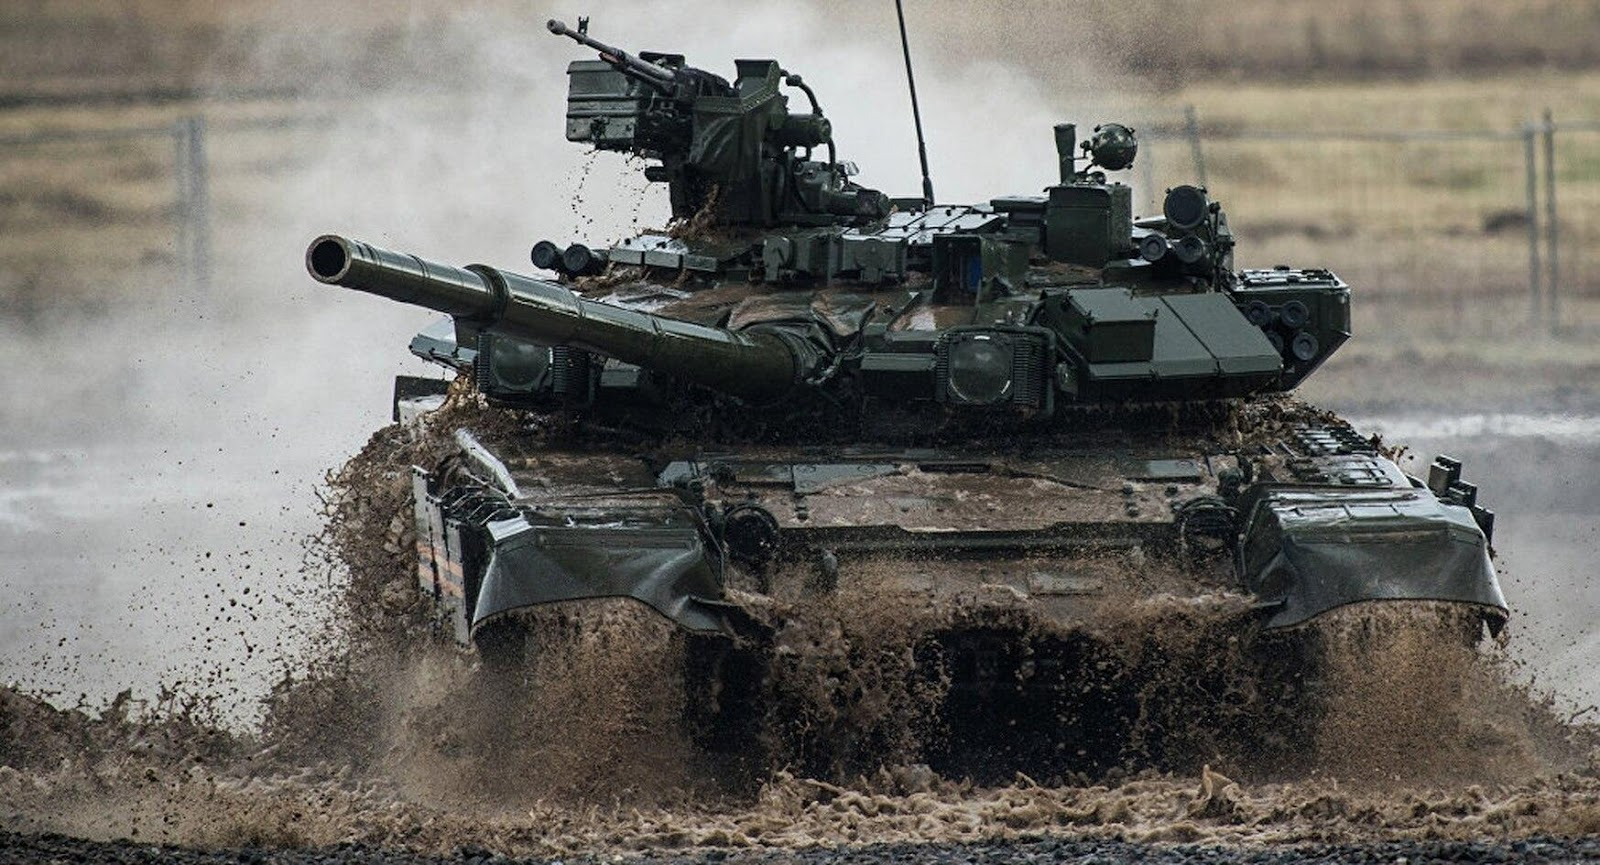 A Russian T-90 main battle tank variant cruises through mud and water during a demonstration. (Ramil Sitdikov/Sputnik)